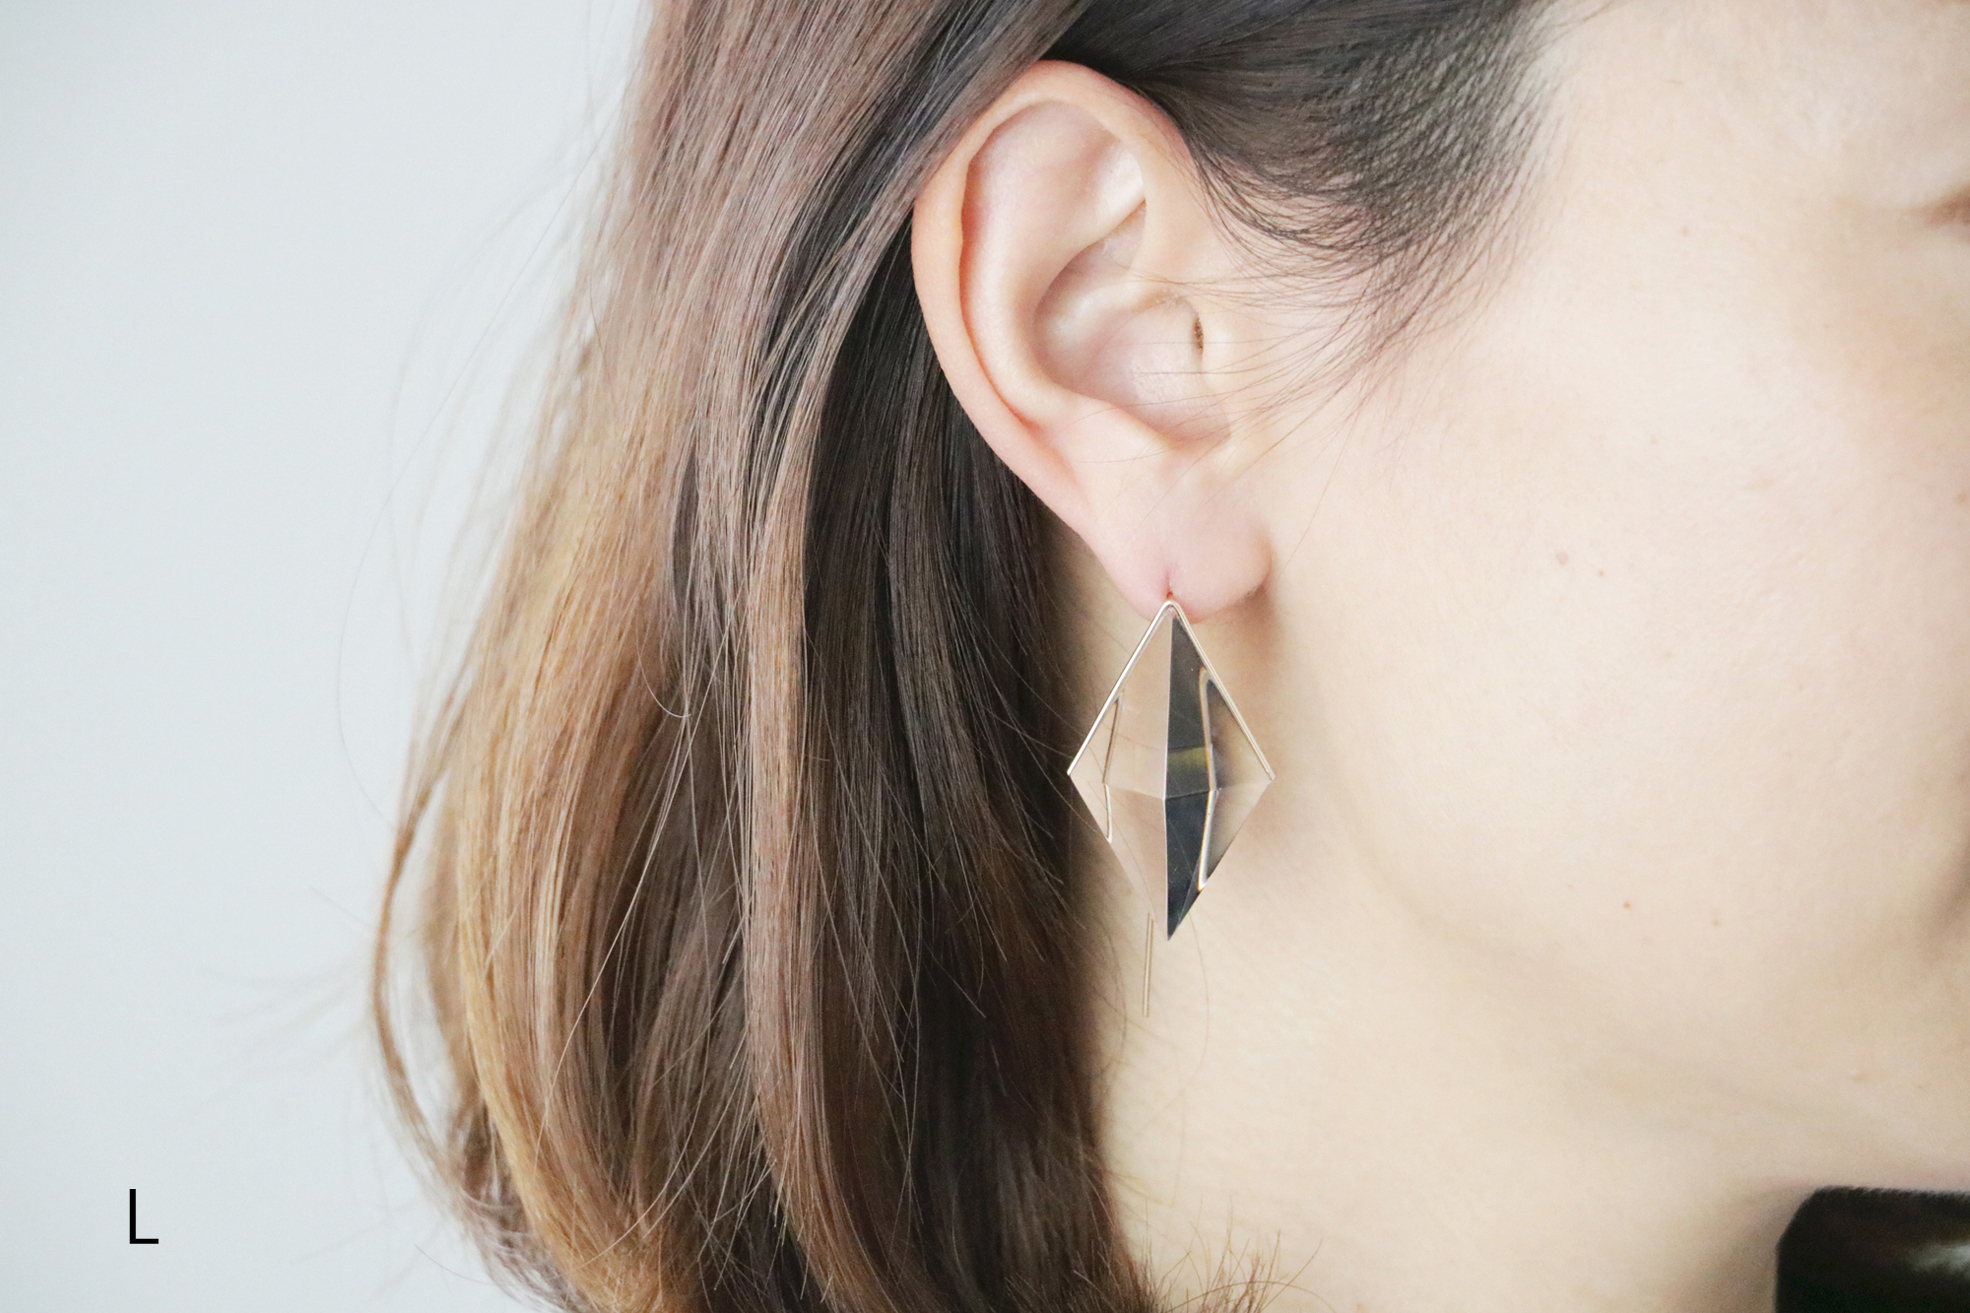 Edo Kiriko Nanako earrings | Time Out Tokyo